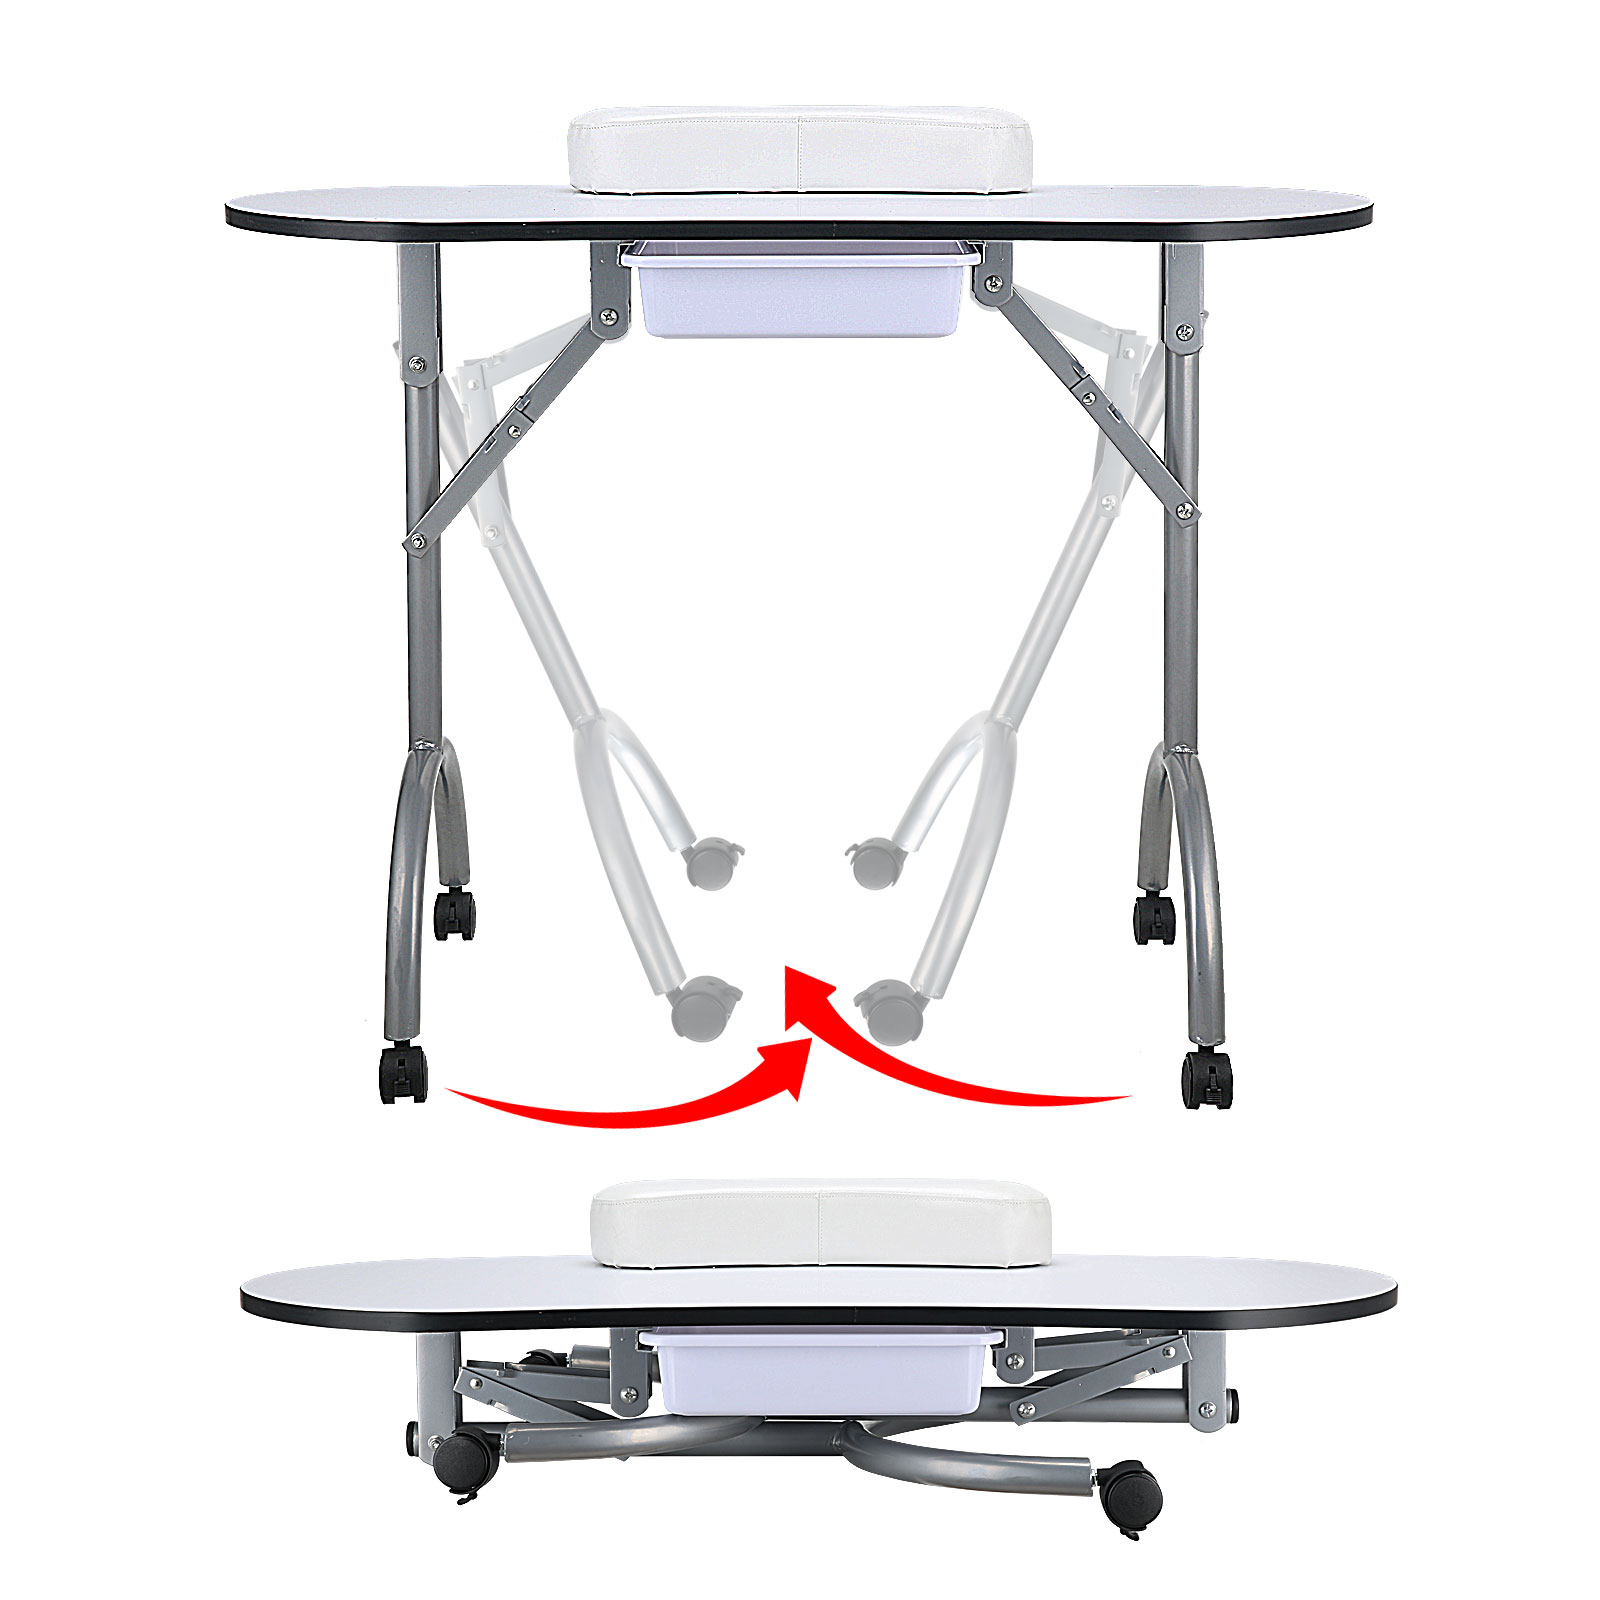 Portable manicure hand table salon desk beauty foldable for Portable manicure table nail technician workstation